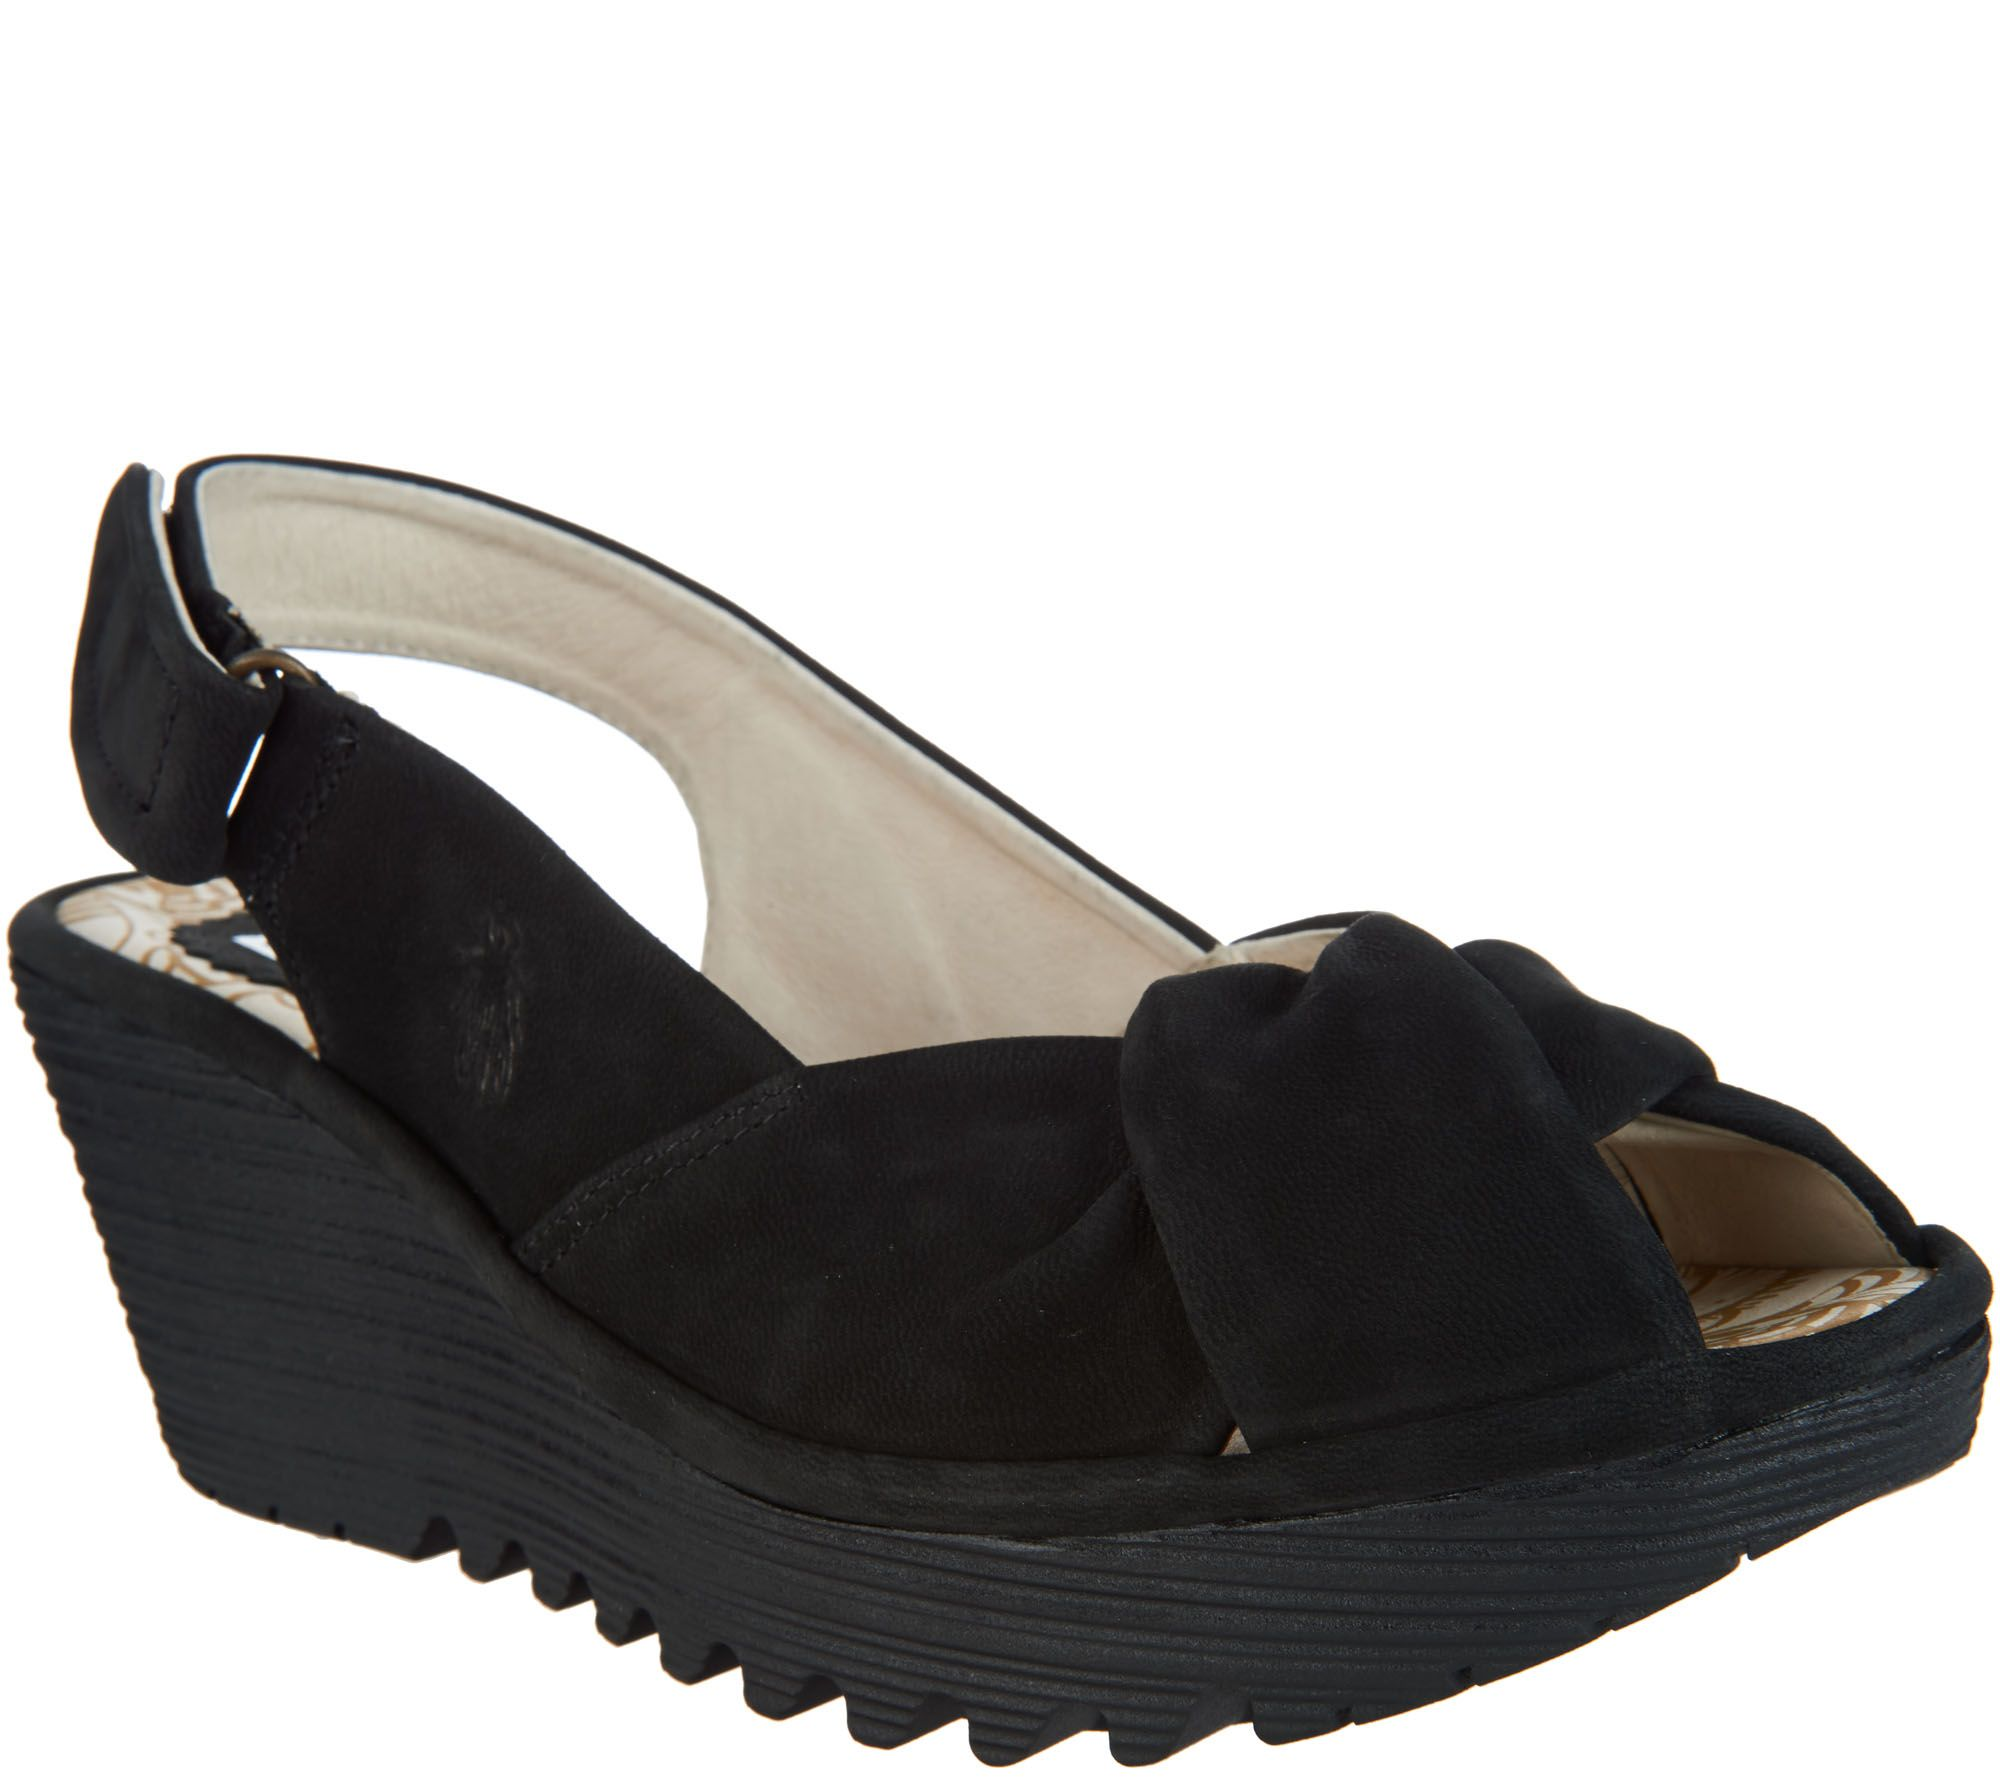 Fly Leather Wedges London Page 1 Slingback Yakin tsCxrdhQ